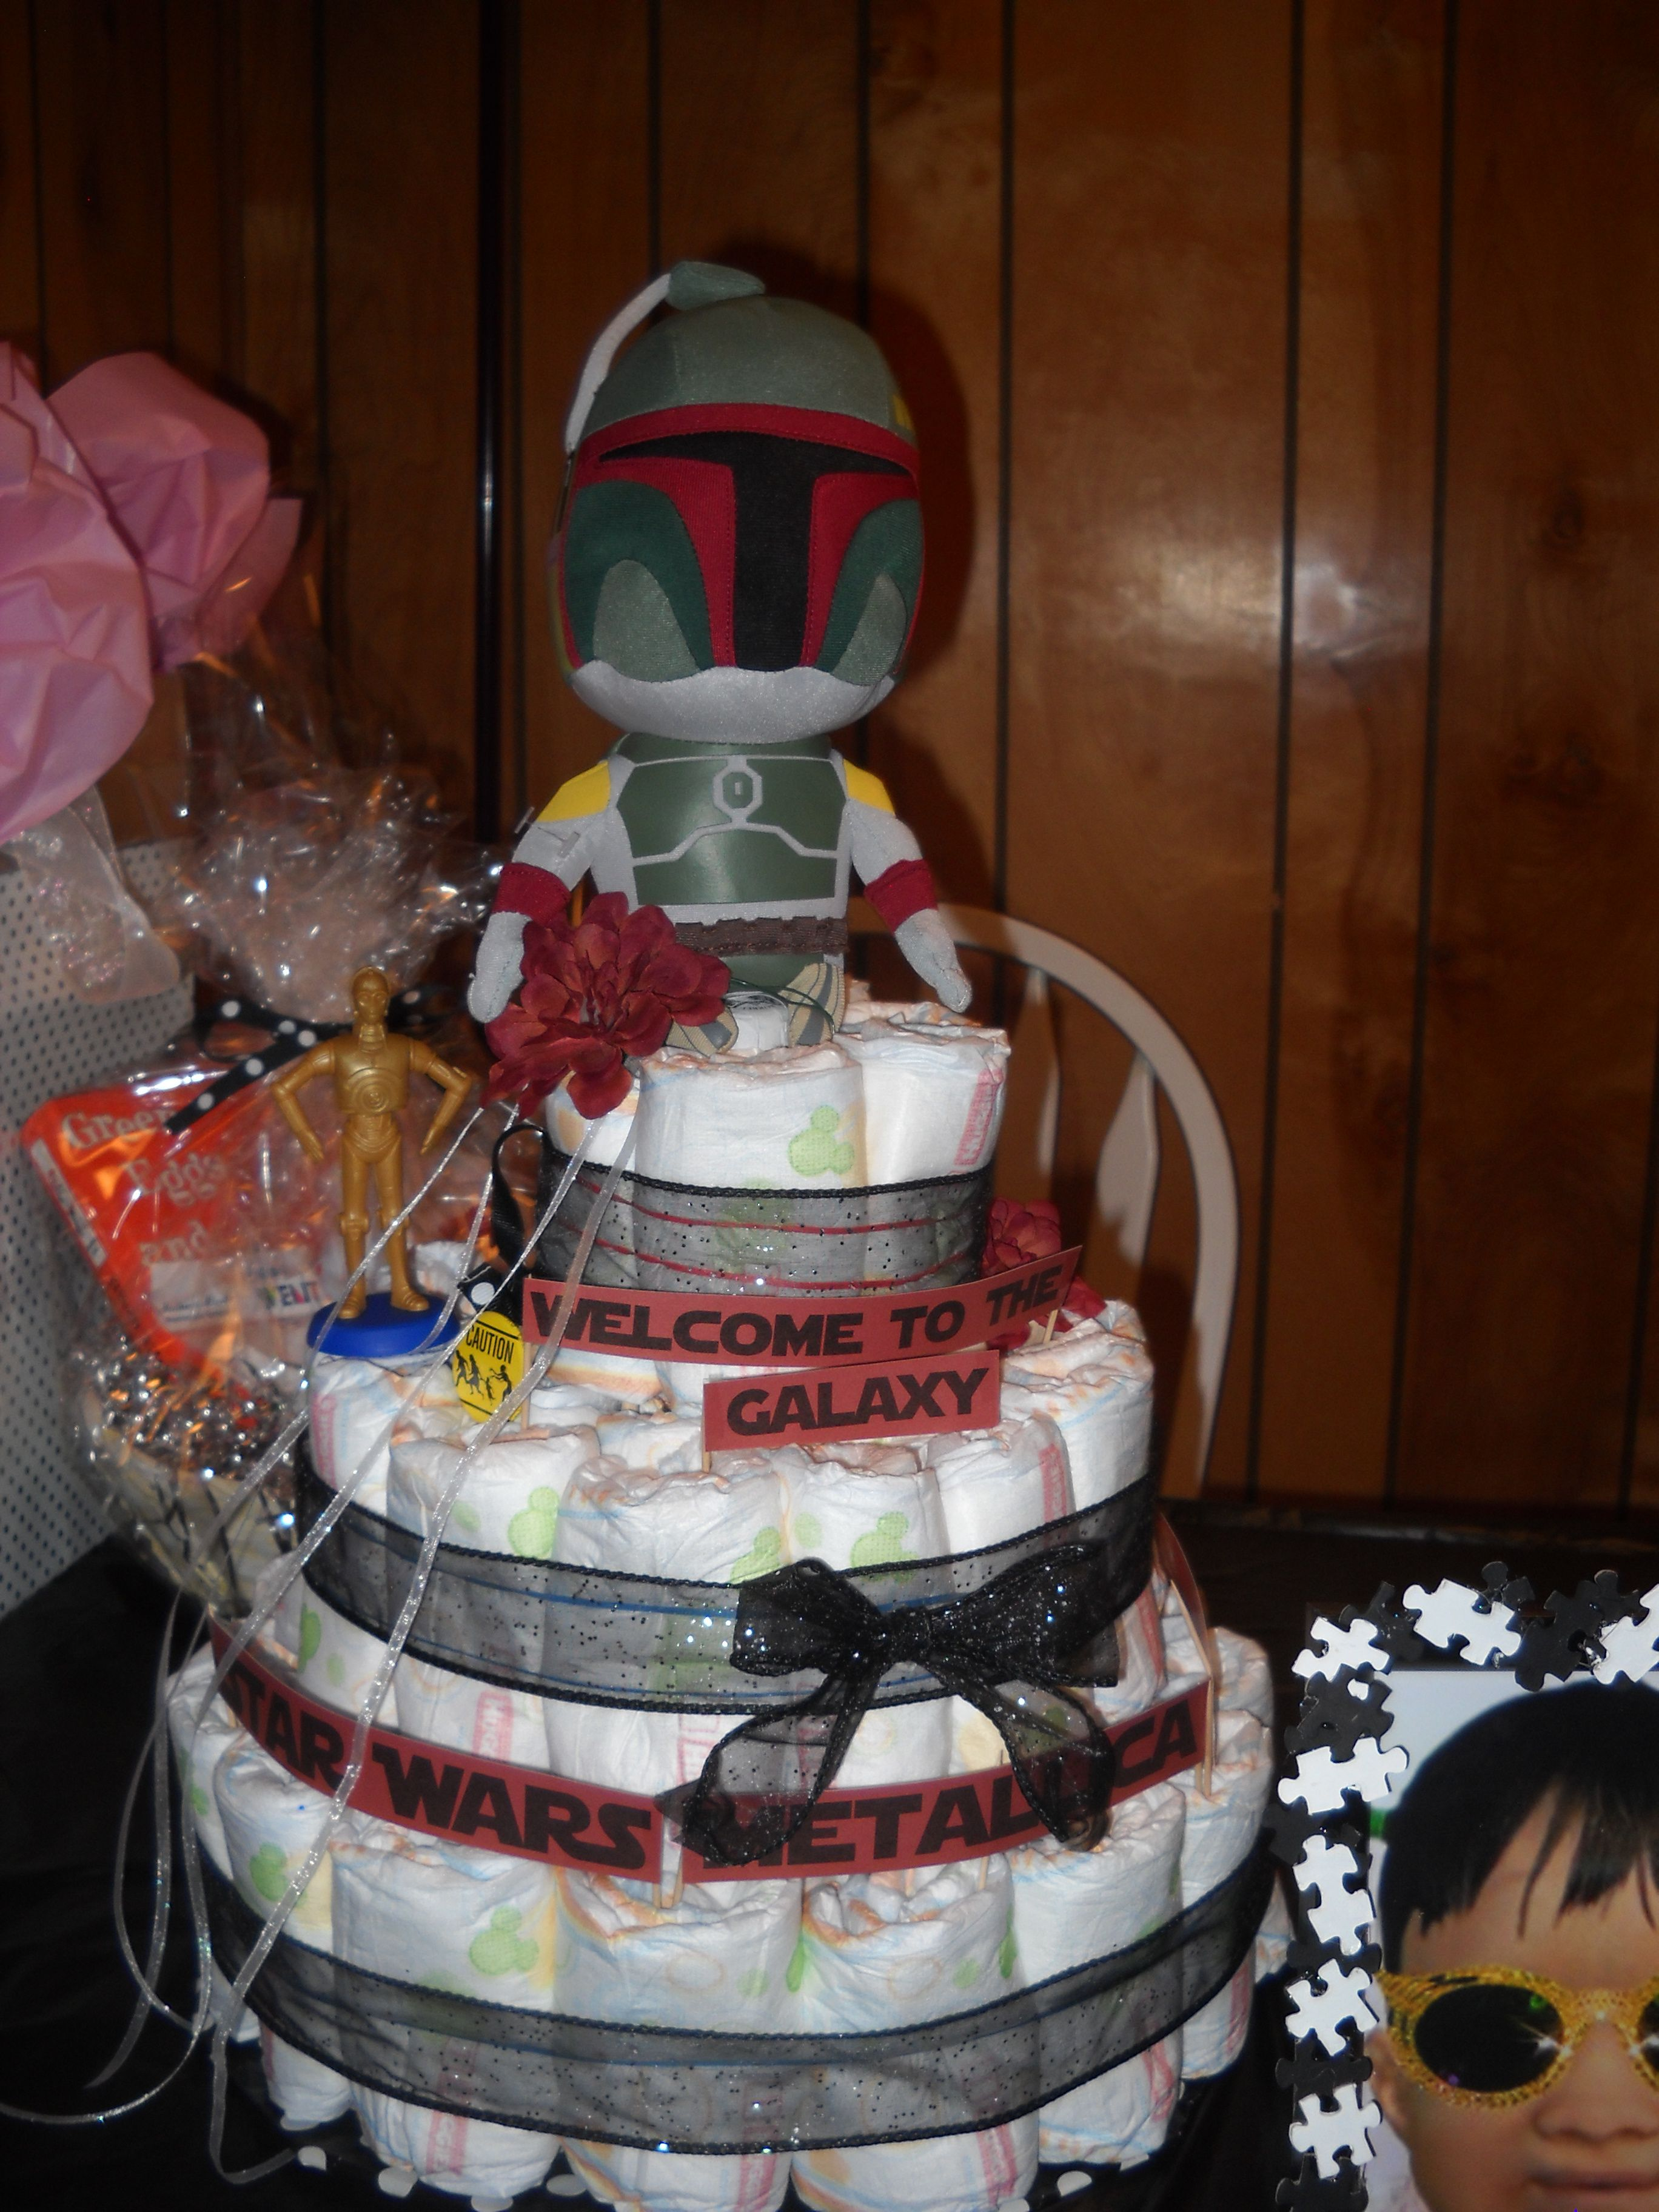 Disney Star Wars Baby Shower Diaper Cake by CutieeDelights on Etsy